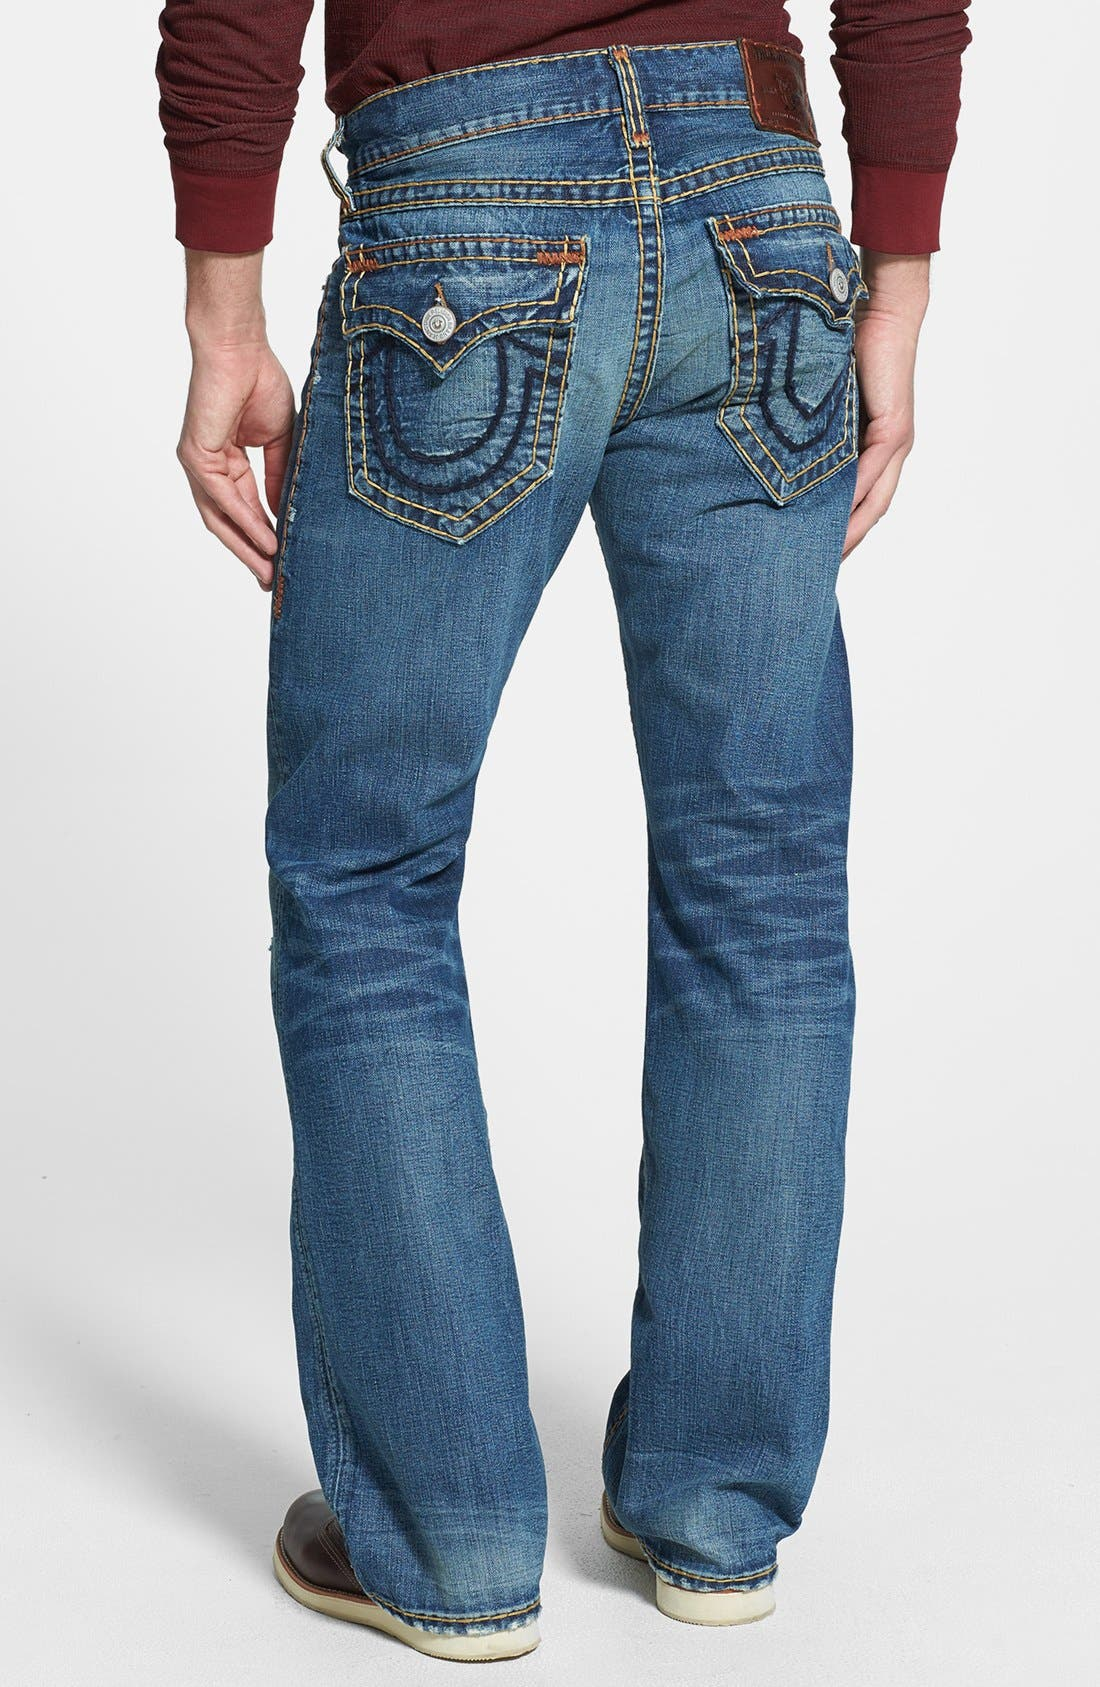 Main Image - True Religion Brand Jeans 'Billy' Bootcut Jeans (Bafm Hot Springs)